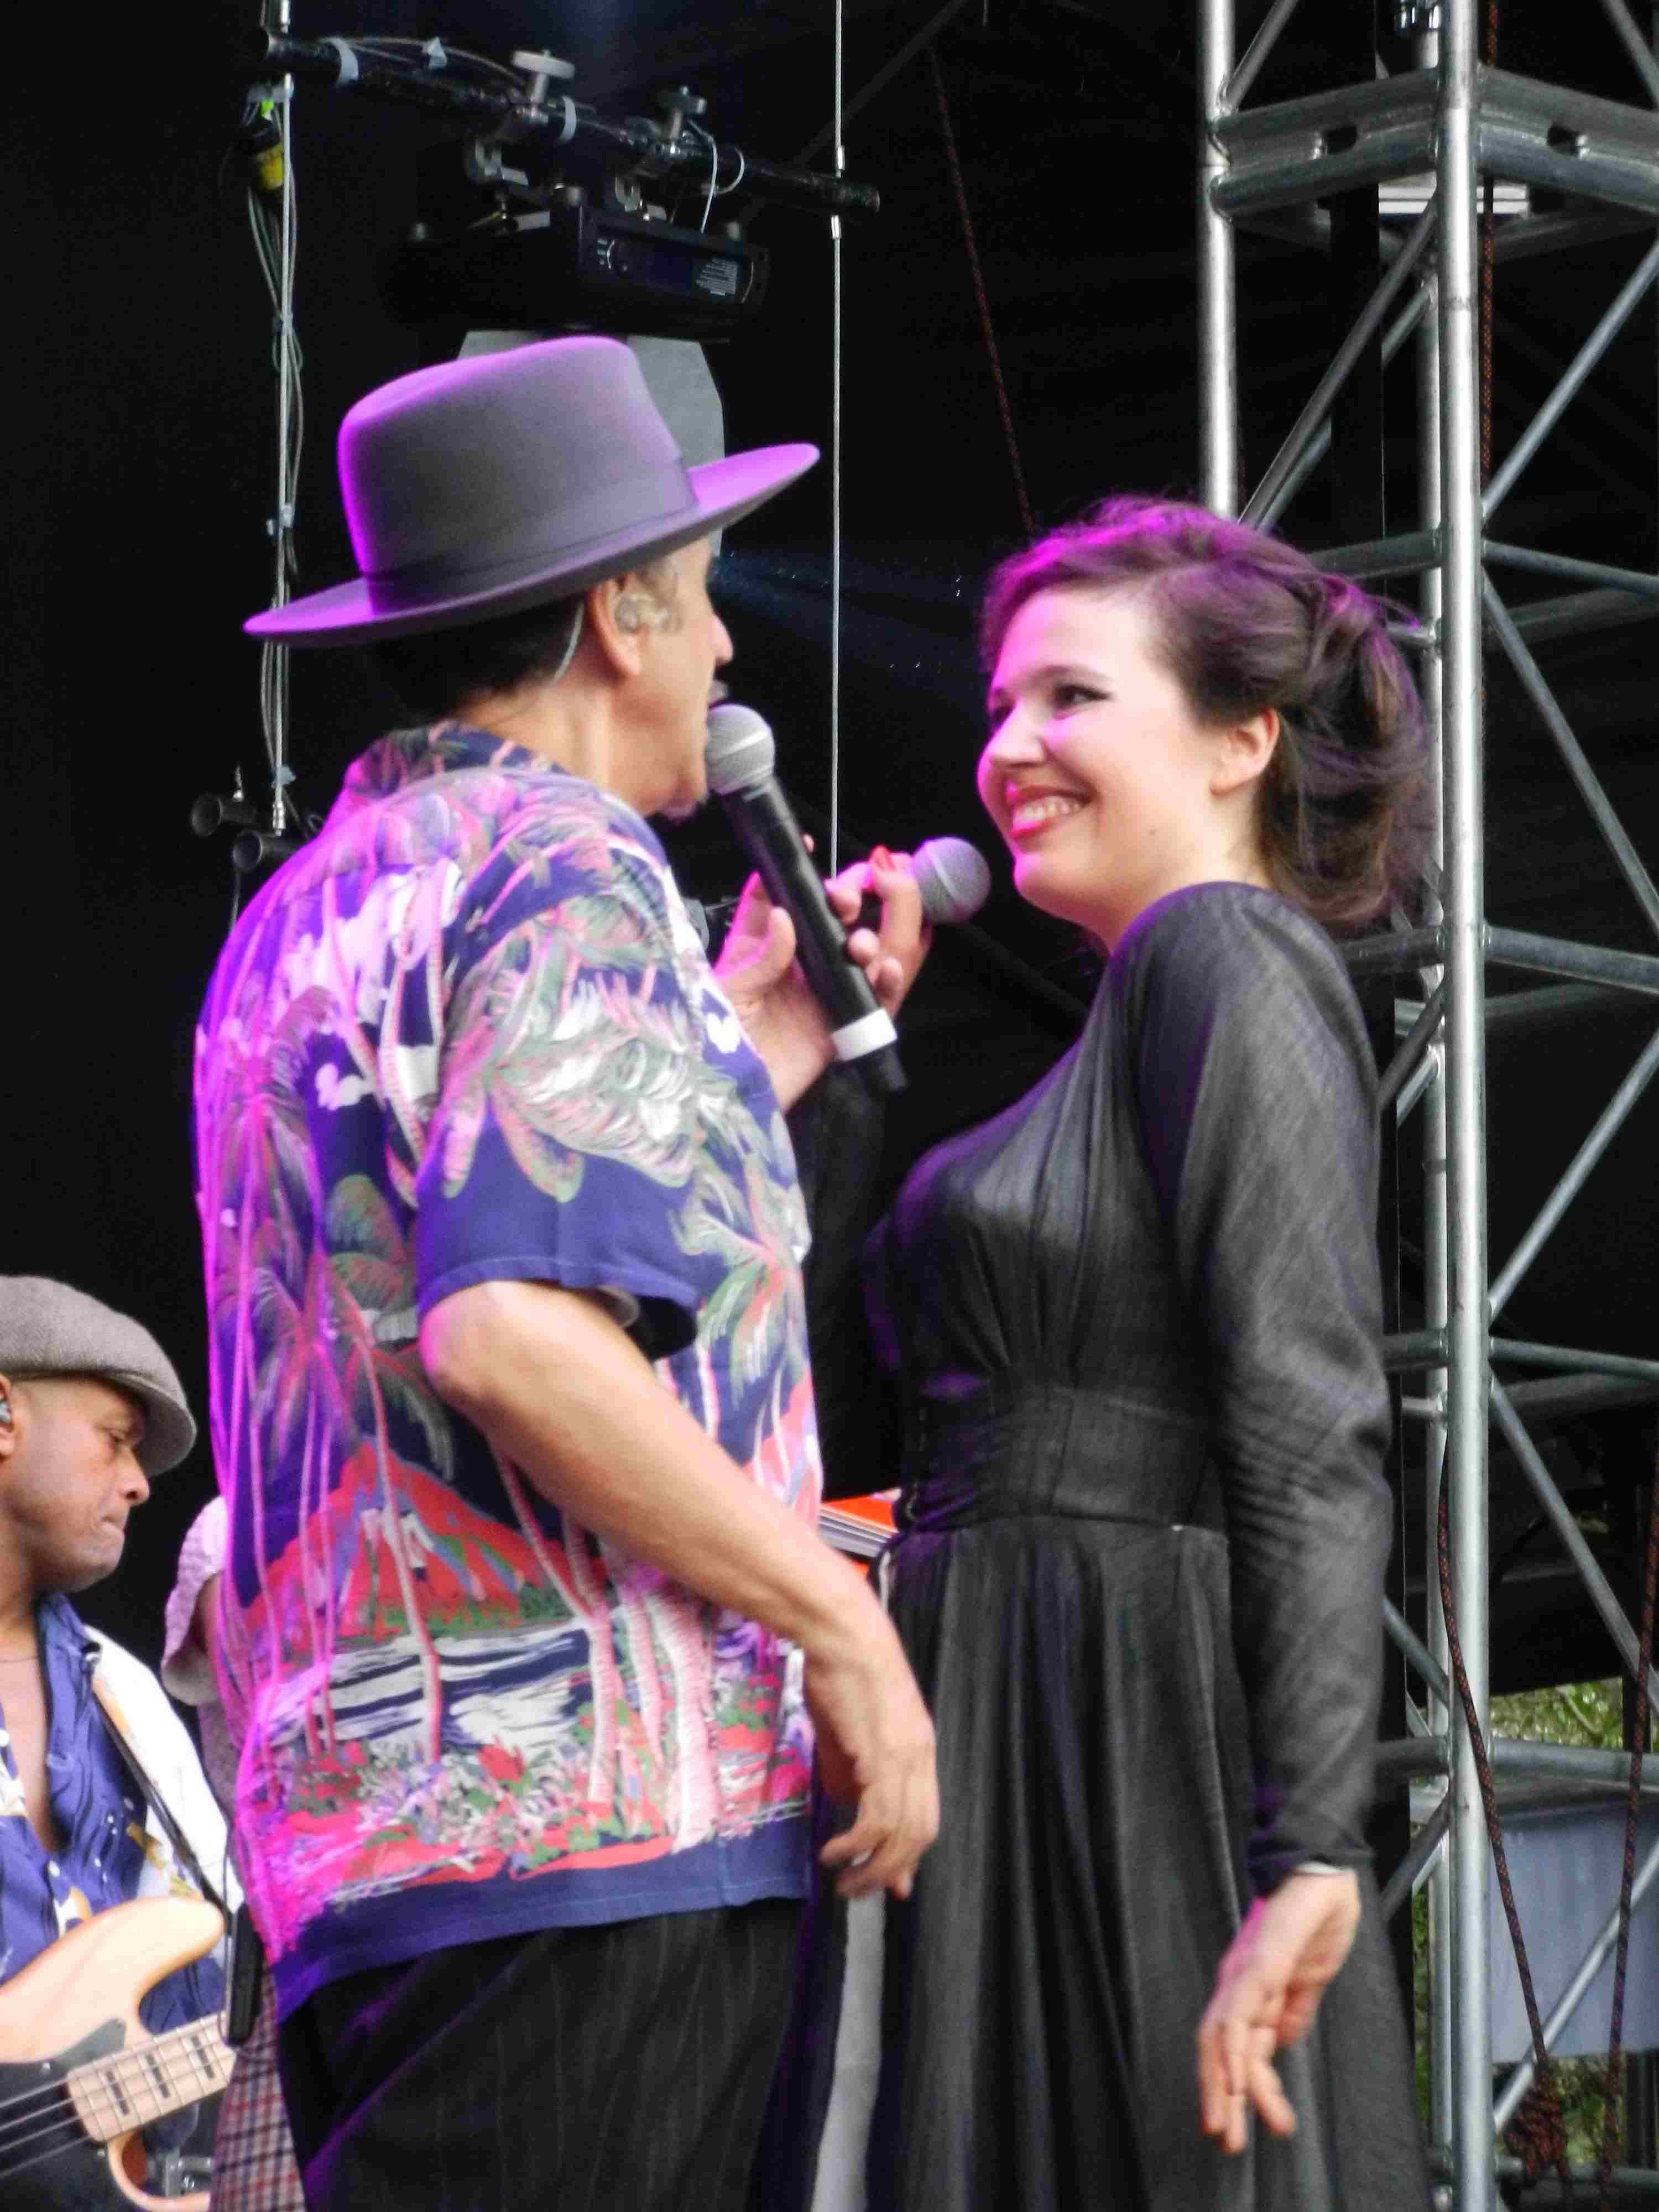 Dexys in Brisbane 2012 (Kevin, Maddy)